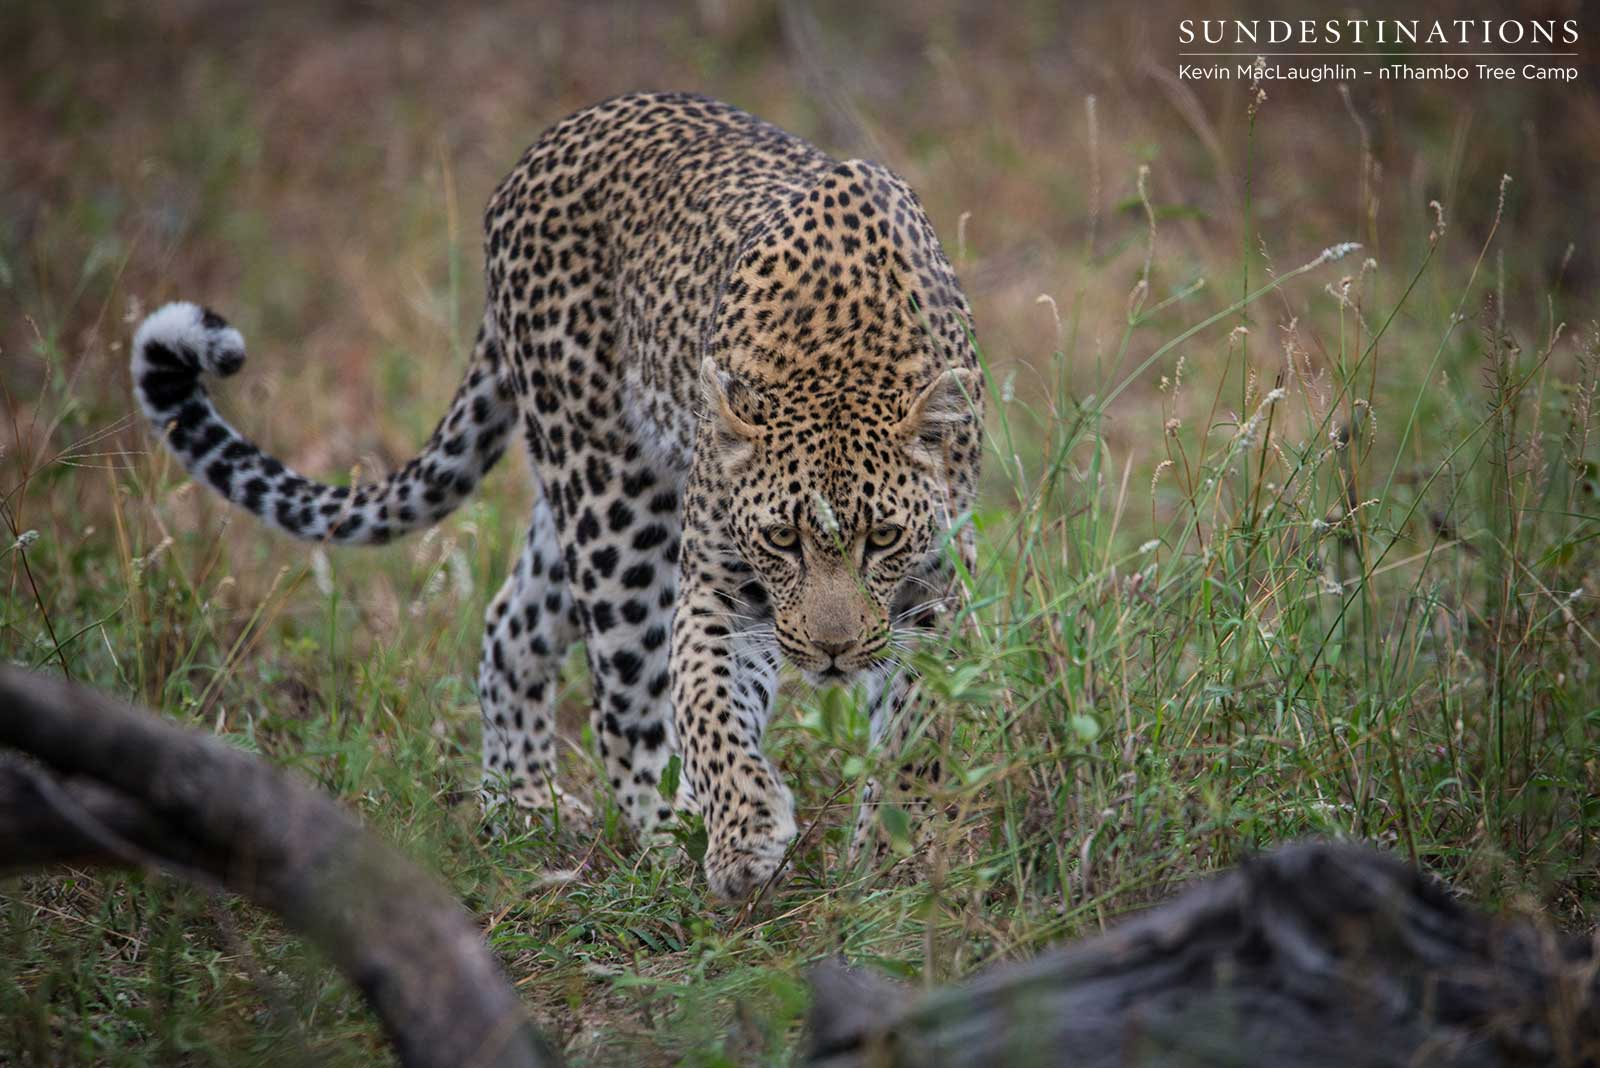 Ross Dam and Bundu: Leopards on a Kill